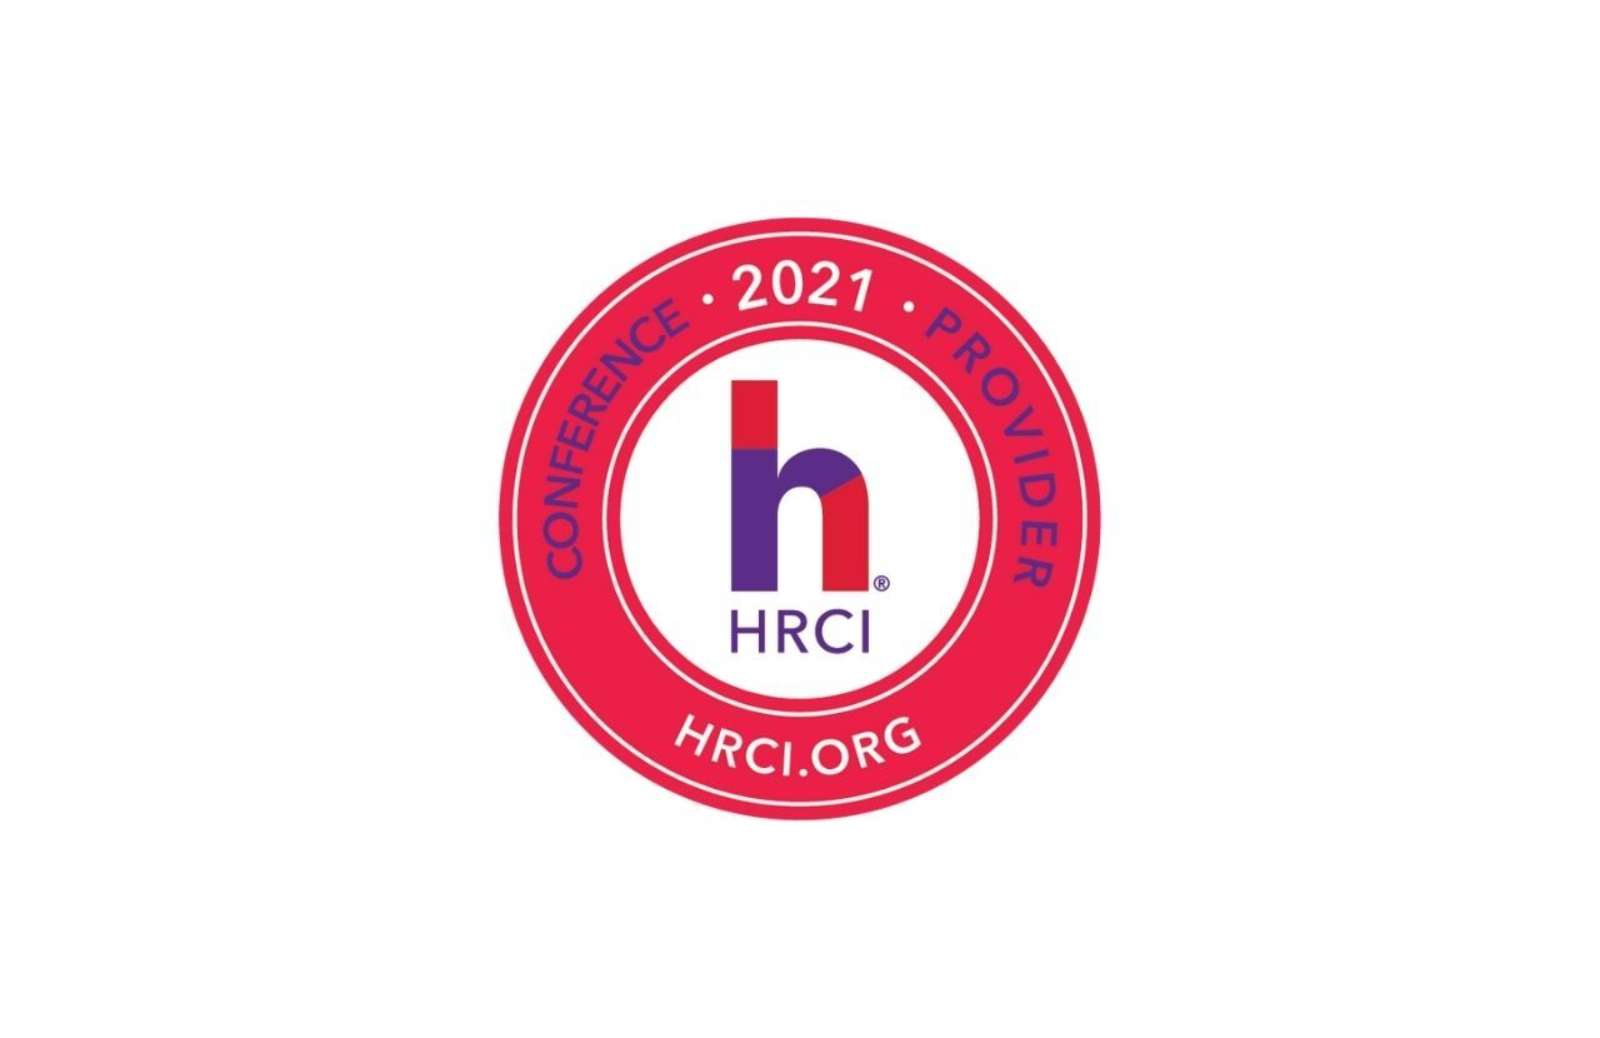 HRCI org Conference Provider 2021 Seal Thumbnail